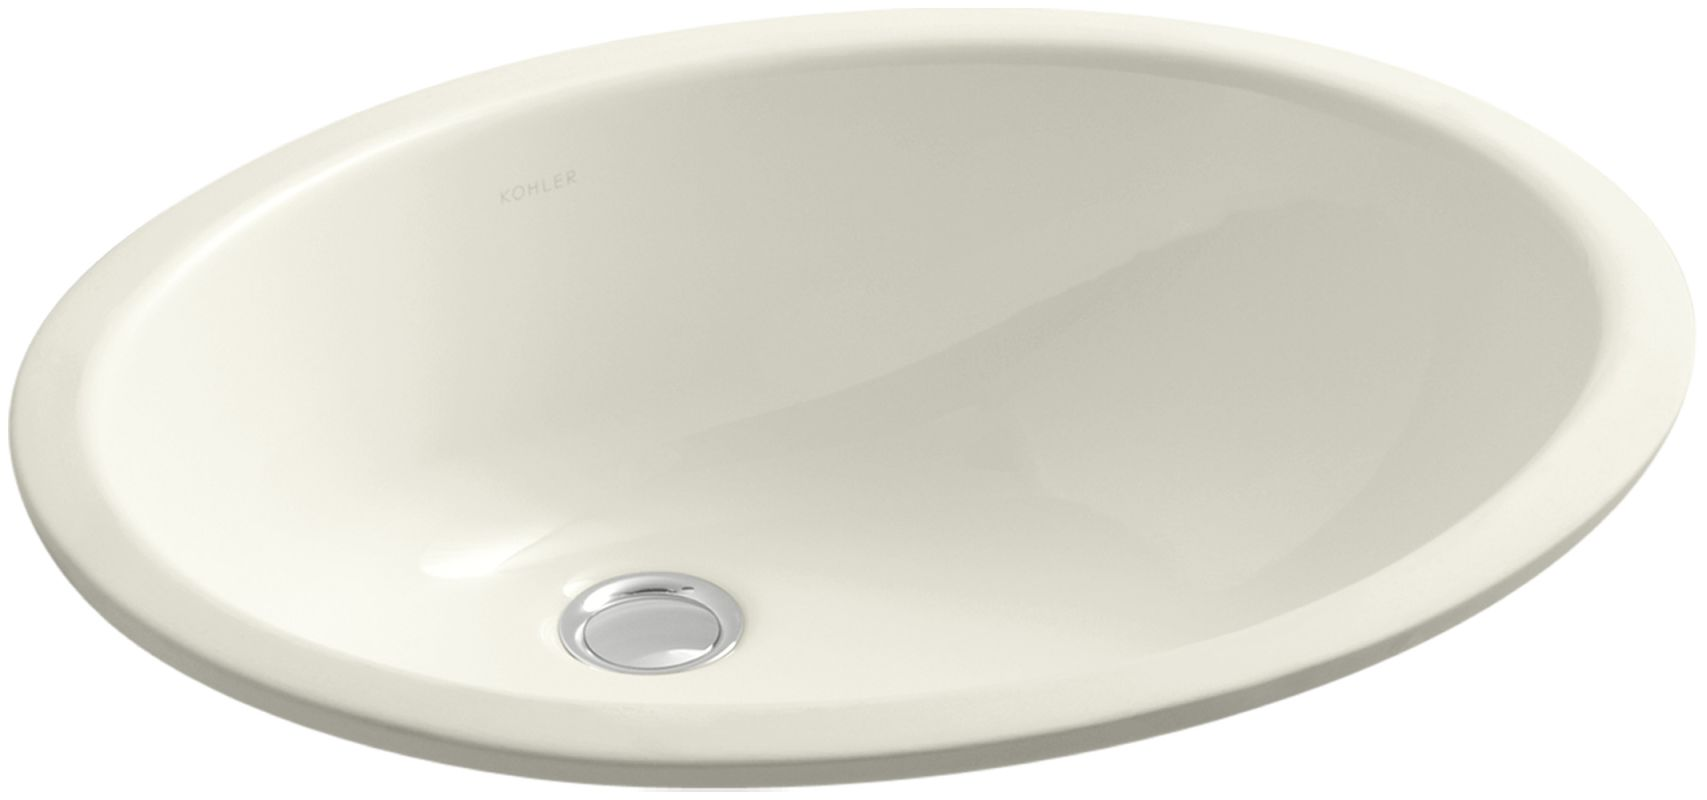 Kohler K 2210 G 96 Biscuit Caxton 17 Quot Undermount Bathroom